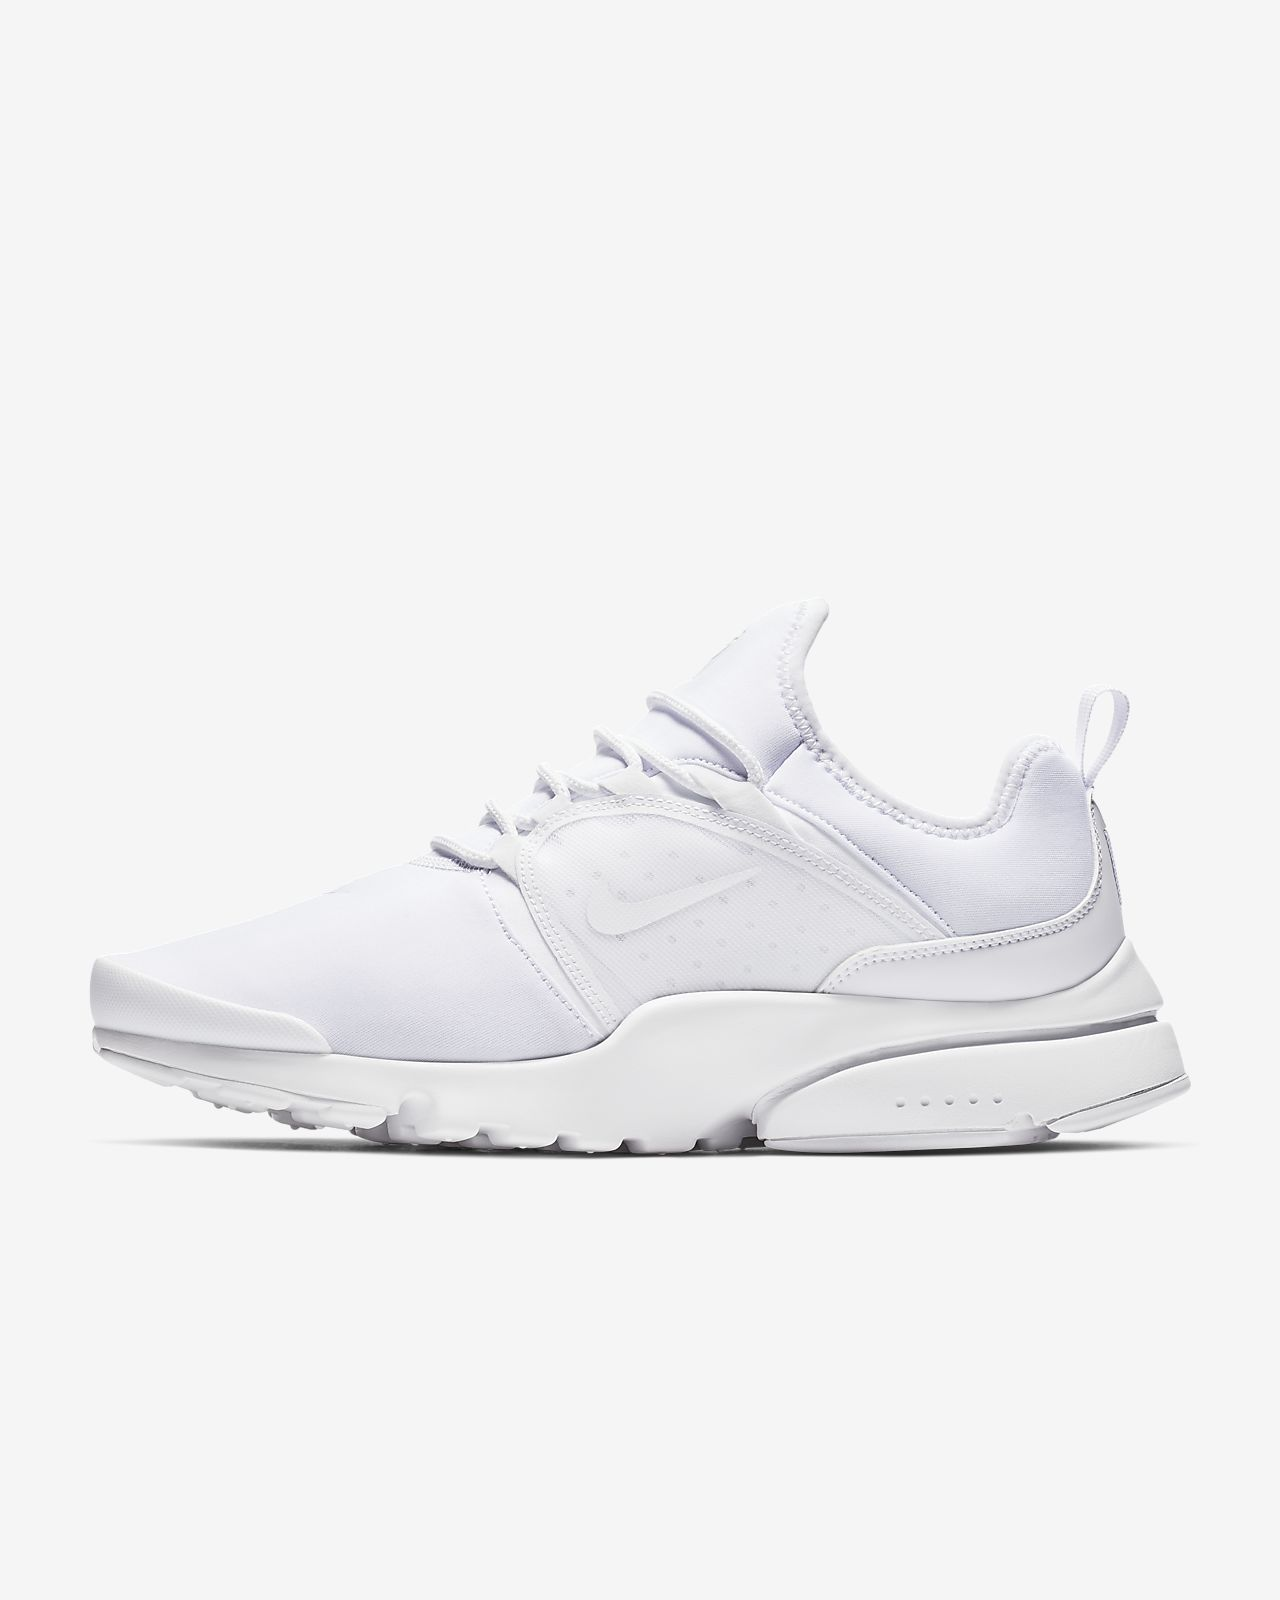 9c606d3d0 Nike Presto Fly World Men s Shoe. Nike.com NL